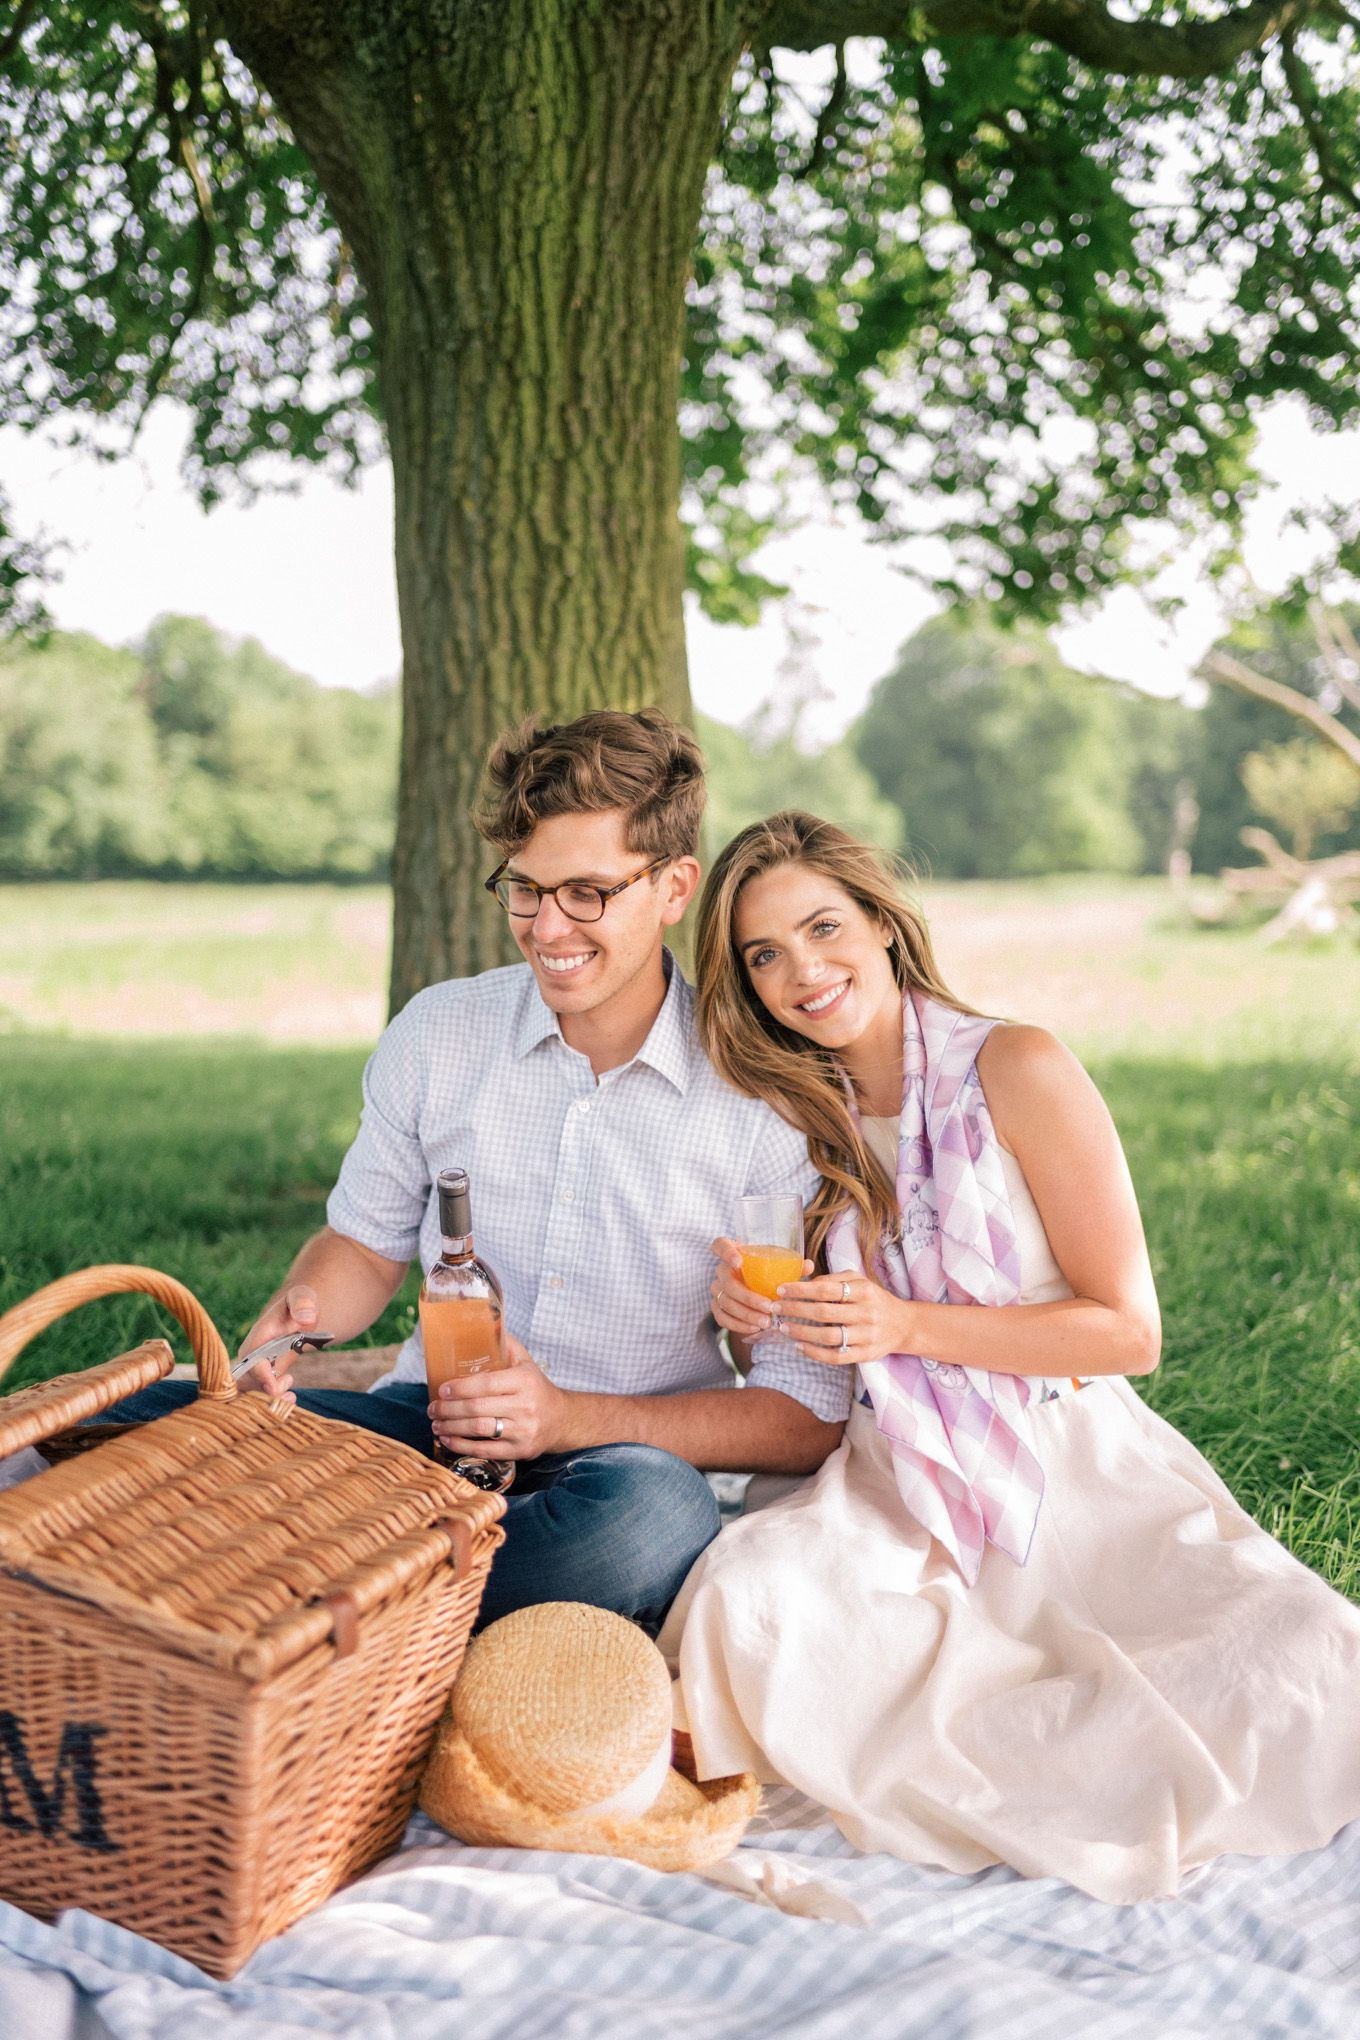 Picnic In Richmond Park, London - Gal Meets Glam